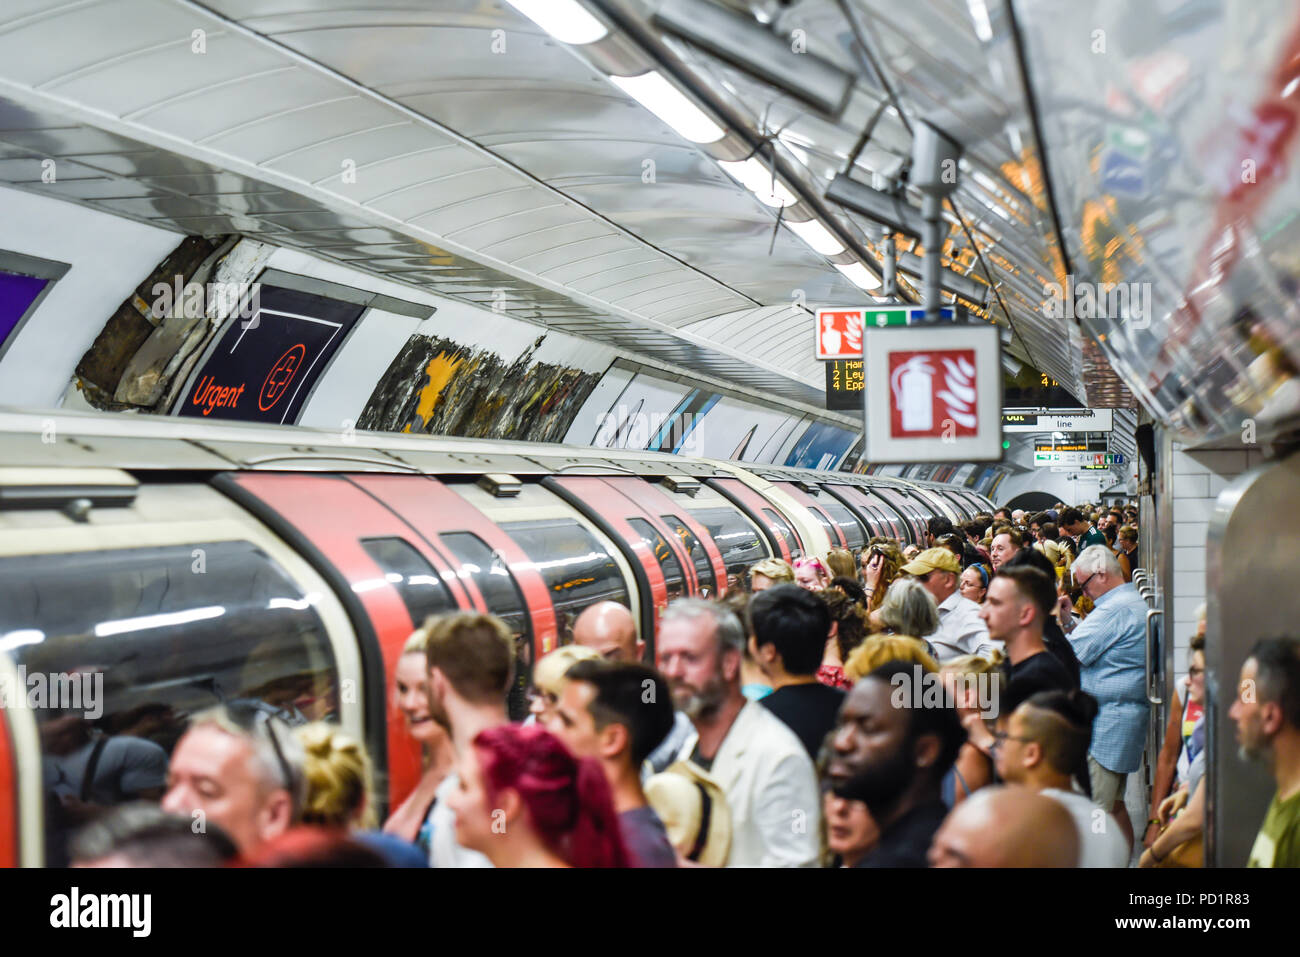 Crowded London Underground station platform and train, Tottenham Court Road tube station busy with passengers at peak time. Packed - Stock Image